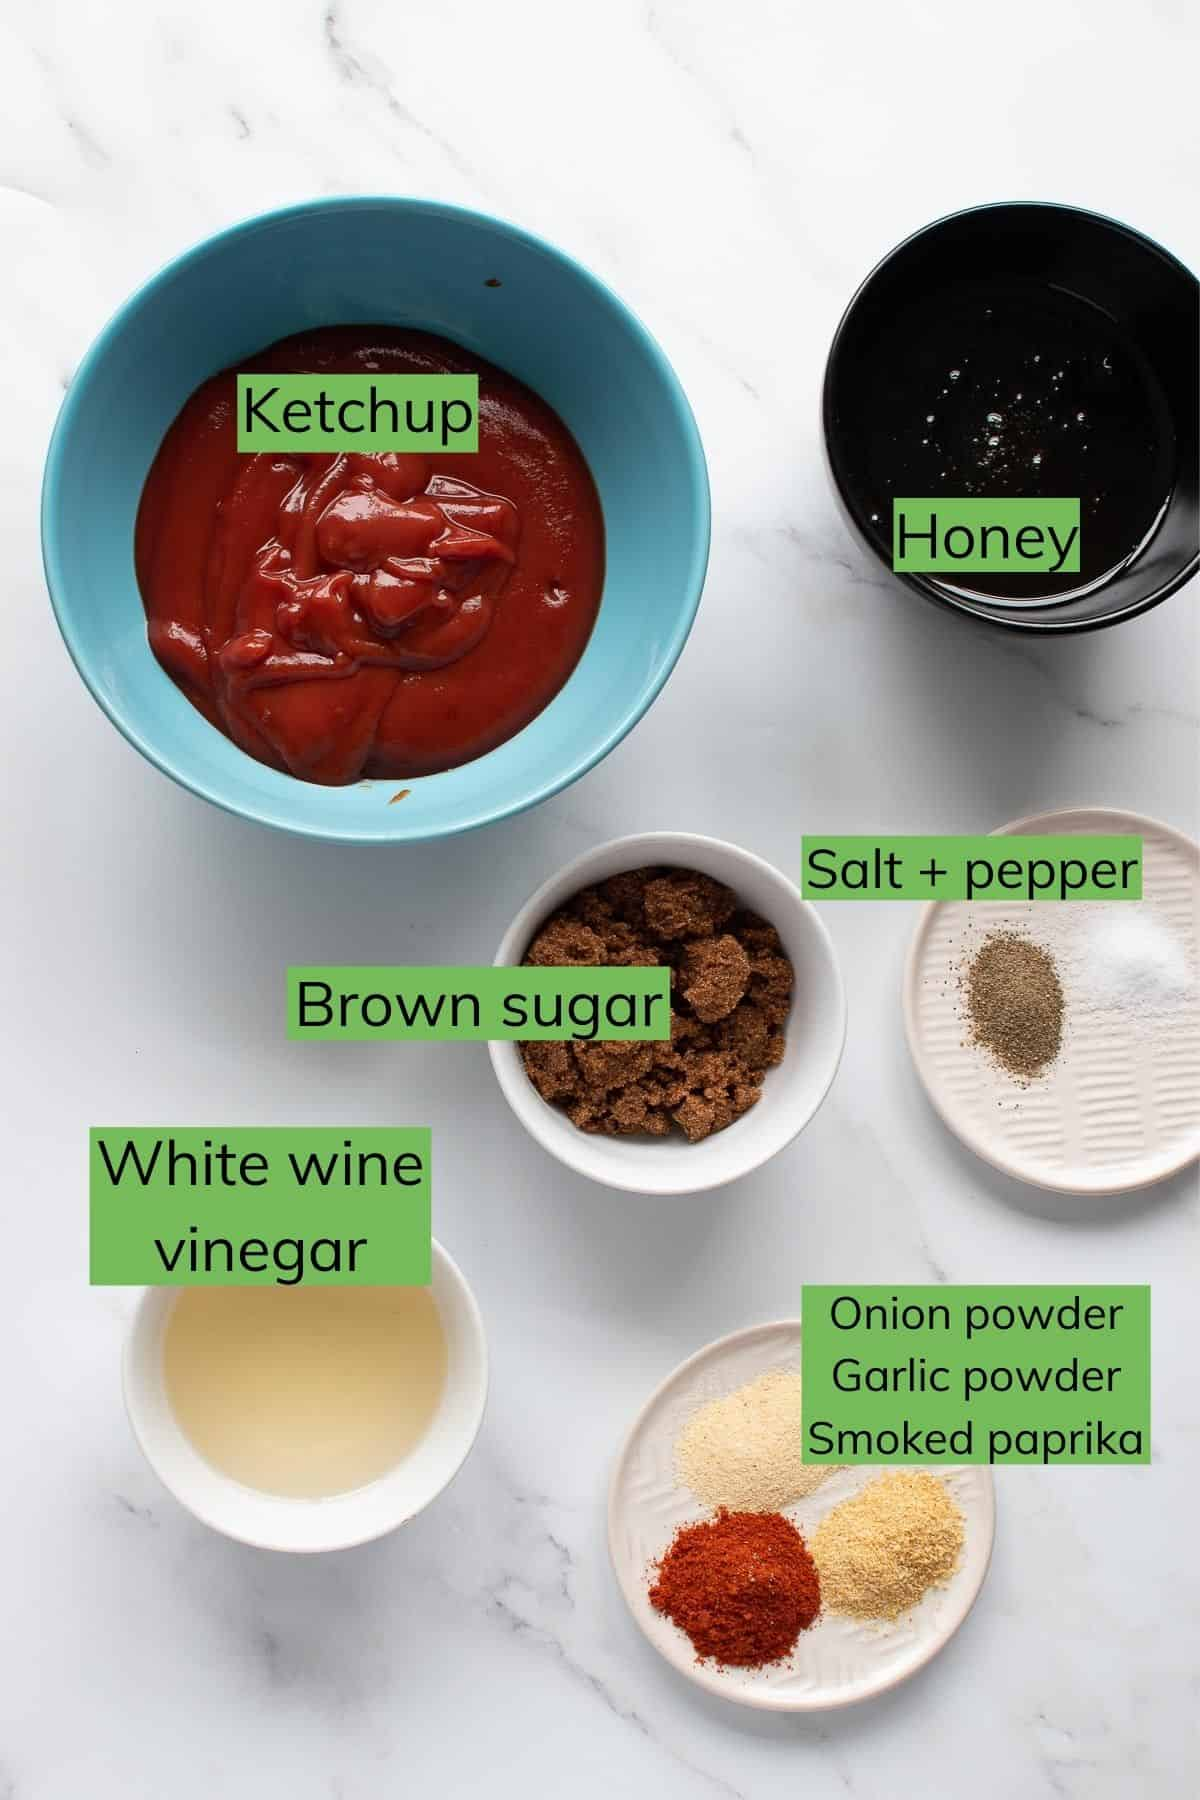 The ingredients for honey BBQ sauce laid out on a table.